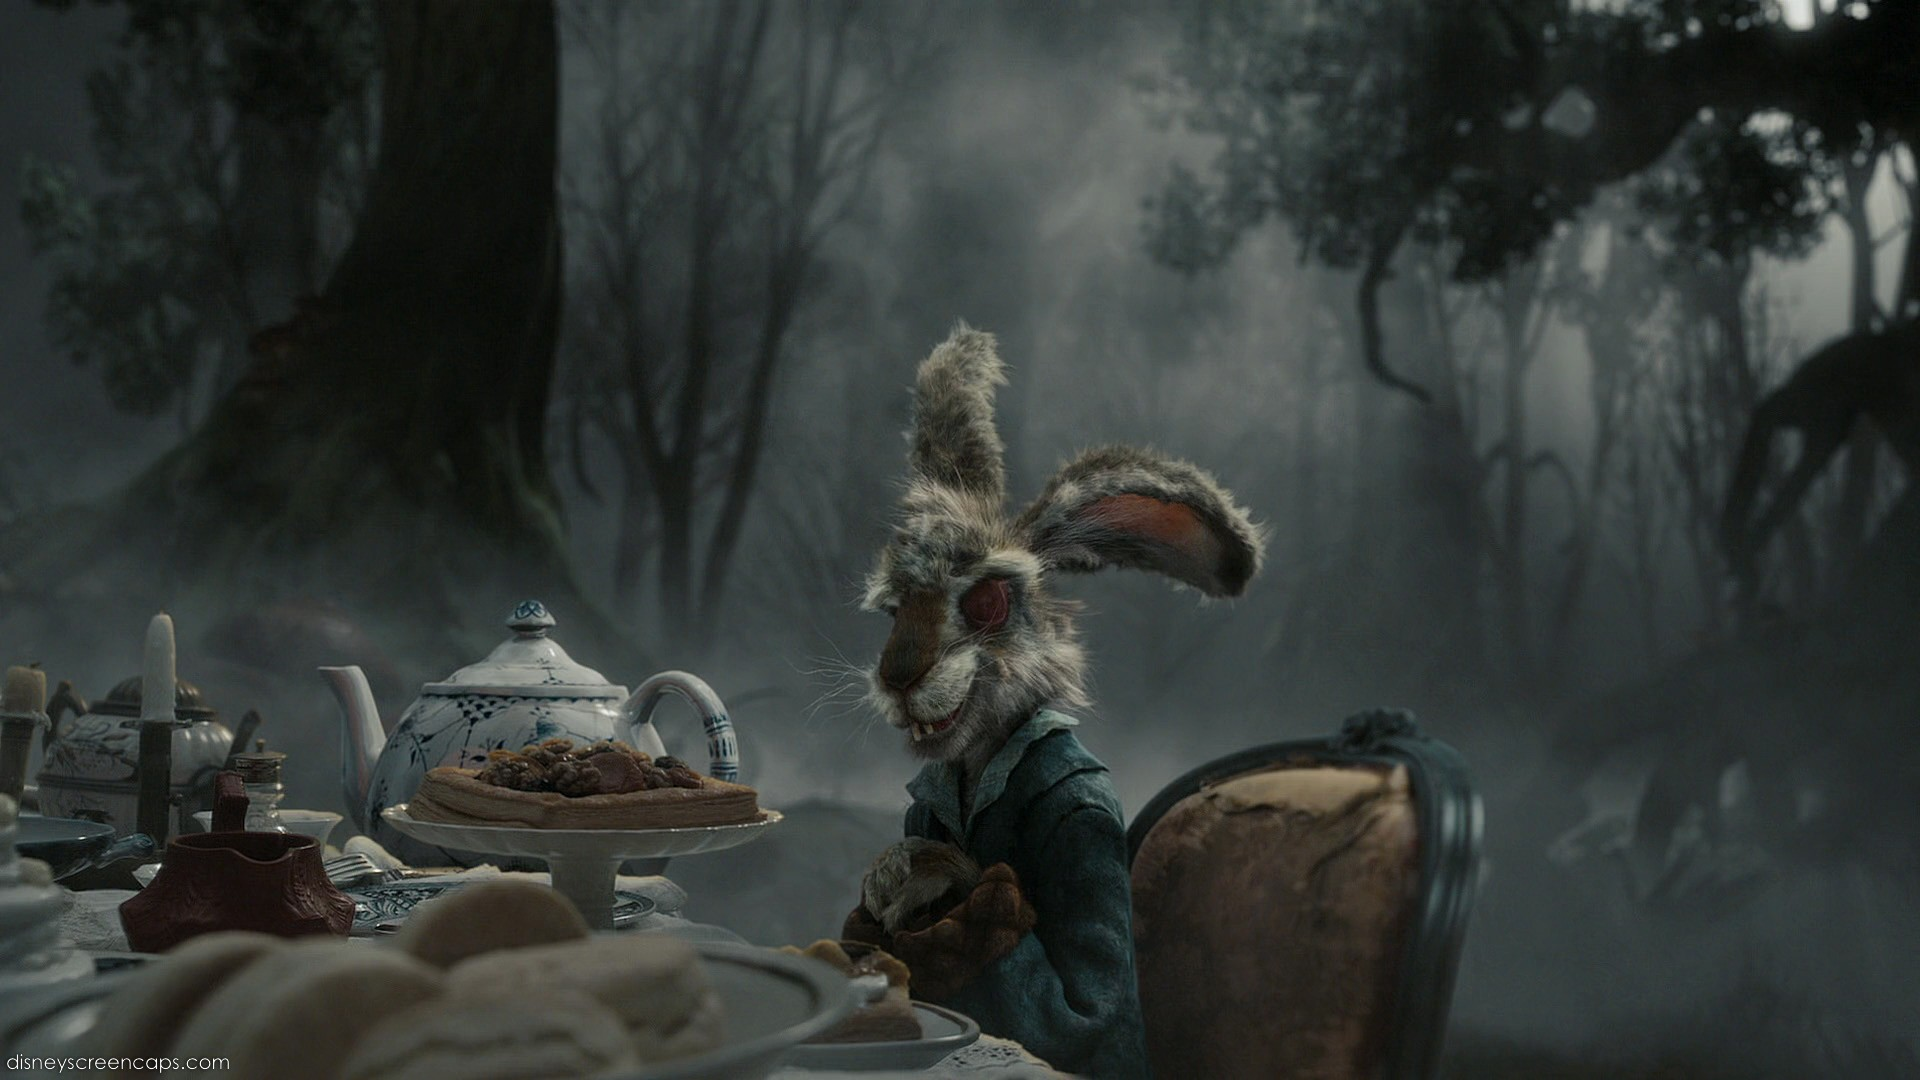 Mad march hare - March Hare Photo (33178921) - Fanpop